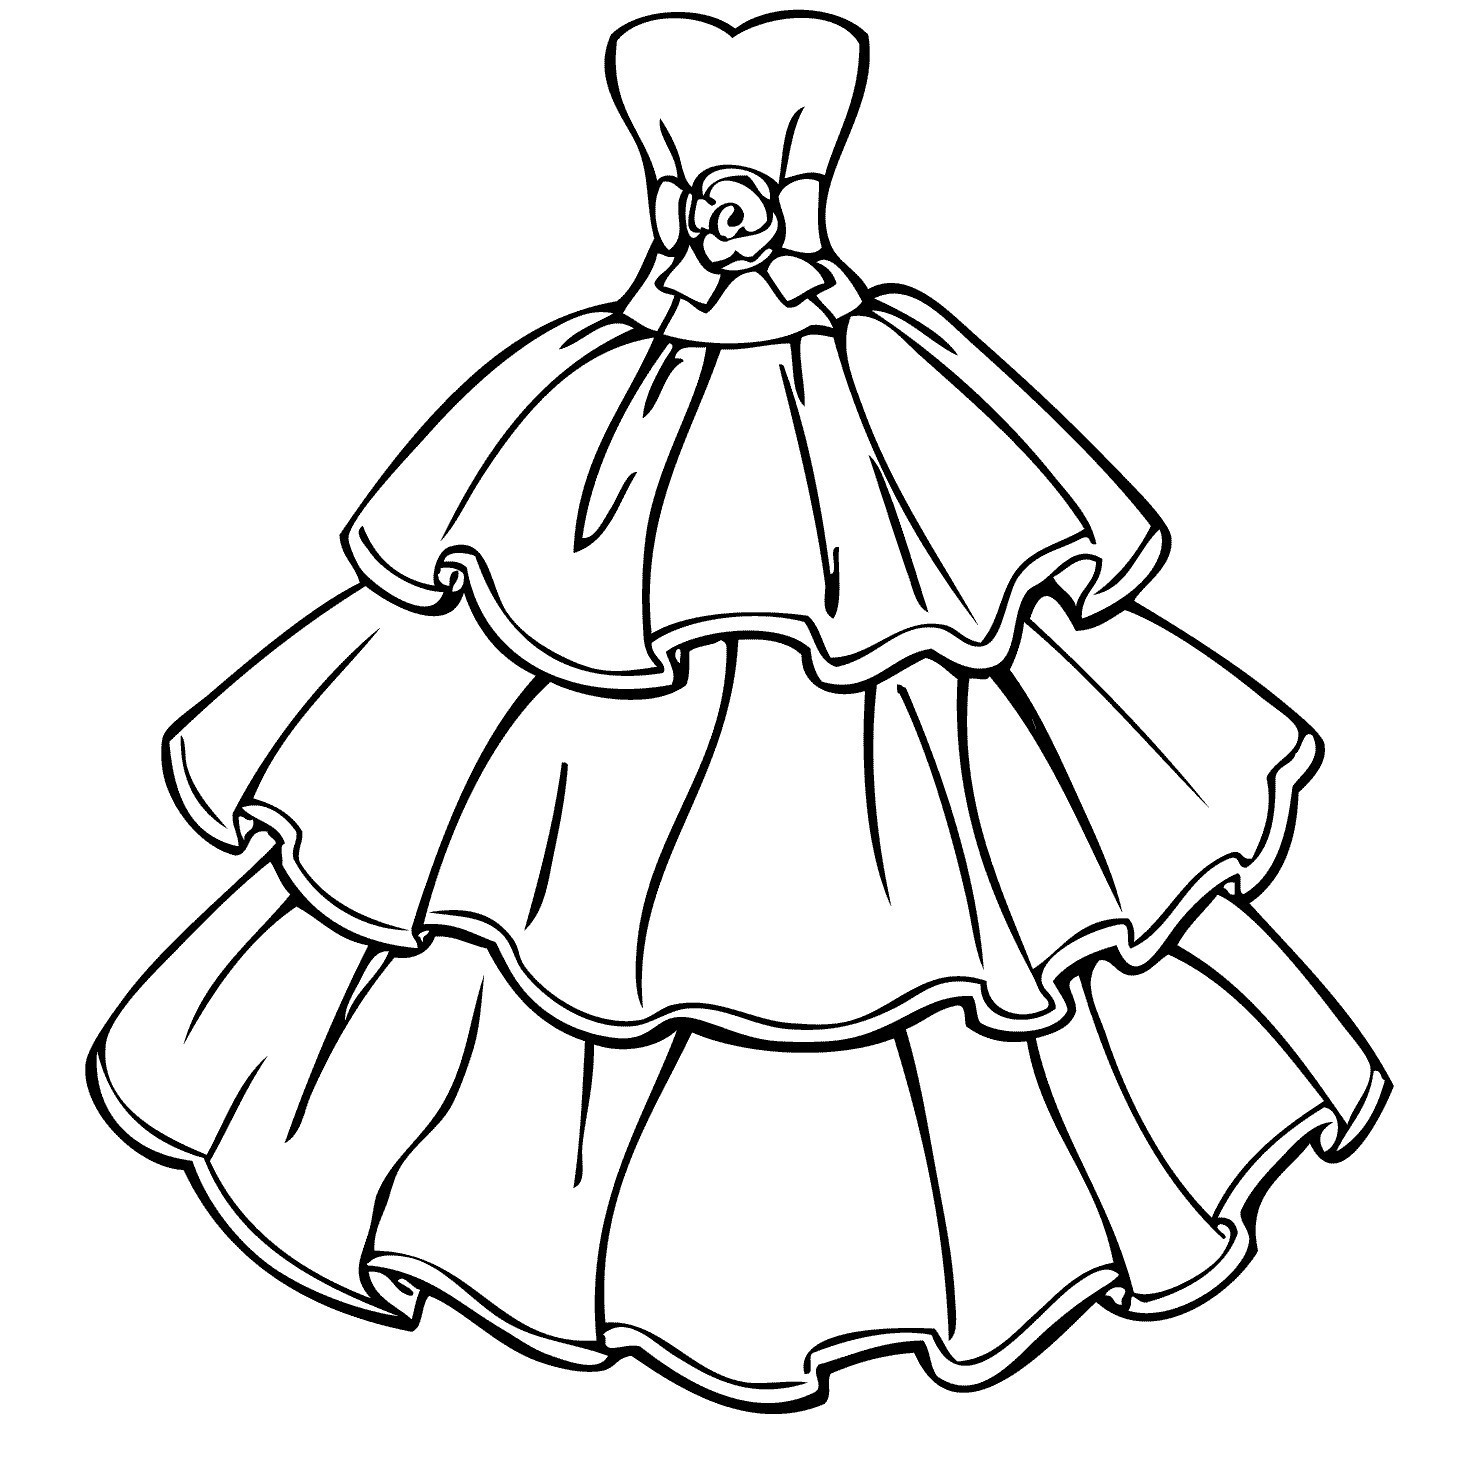 Best ideas about New Coloring Pages For Girls . Save or Pin Wedding Dress Coloring Pages Collection Free Coloring Books Now.